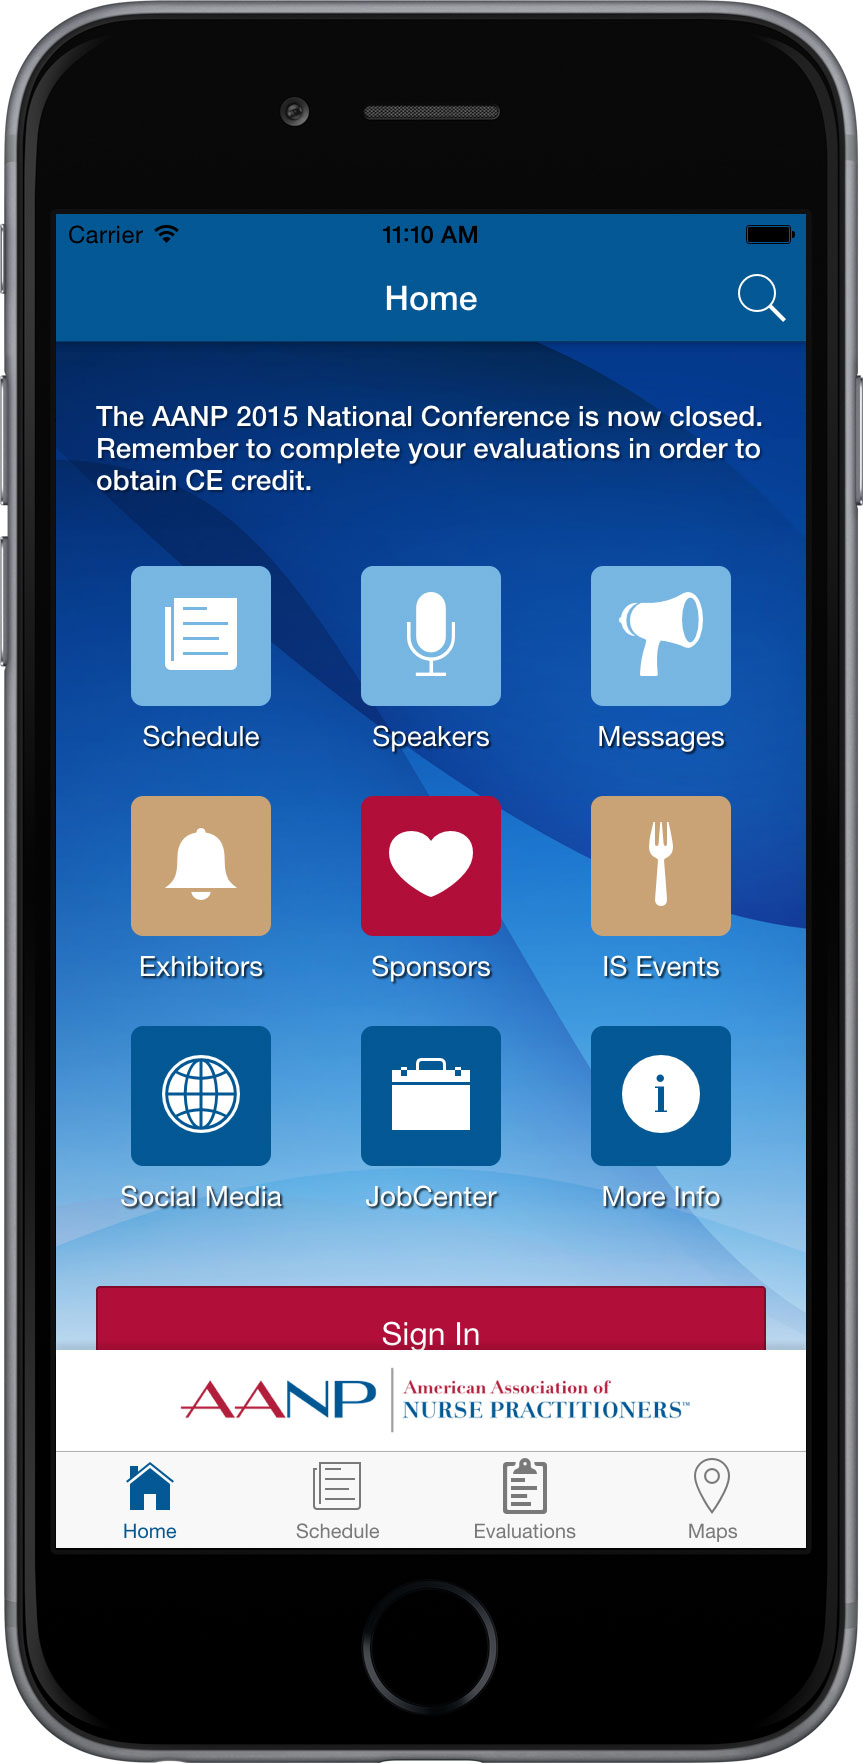 AANP Conference Mobile App - Home Screen